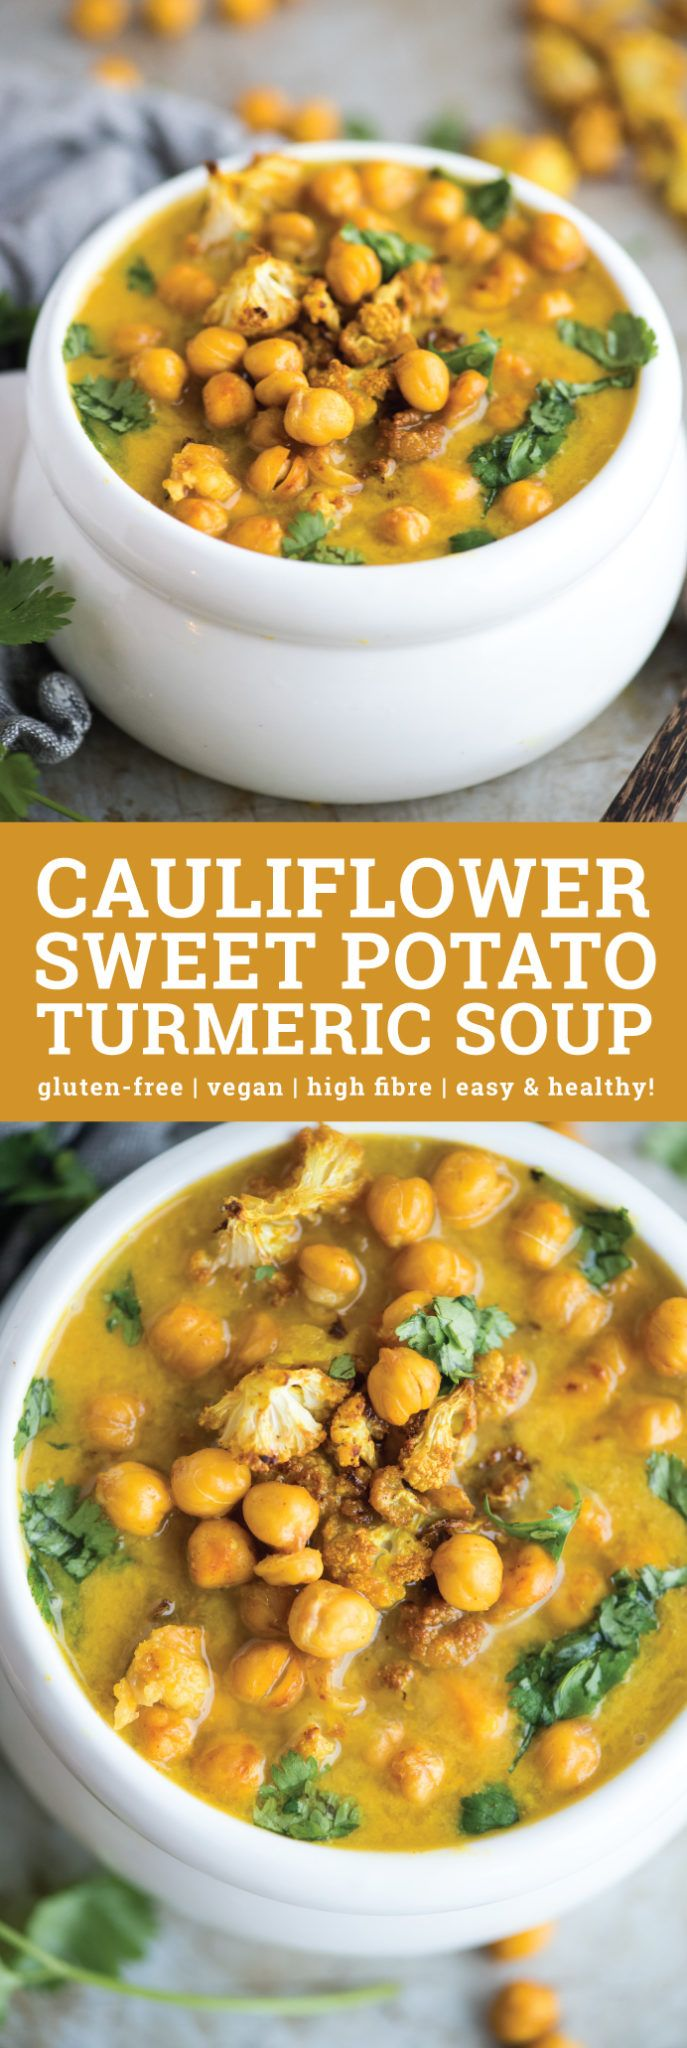 Cauliflower Sweet Potato Turmeric Soup via @runonrealfood